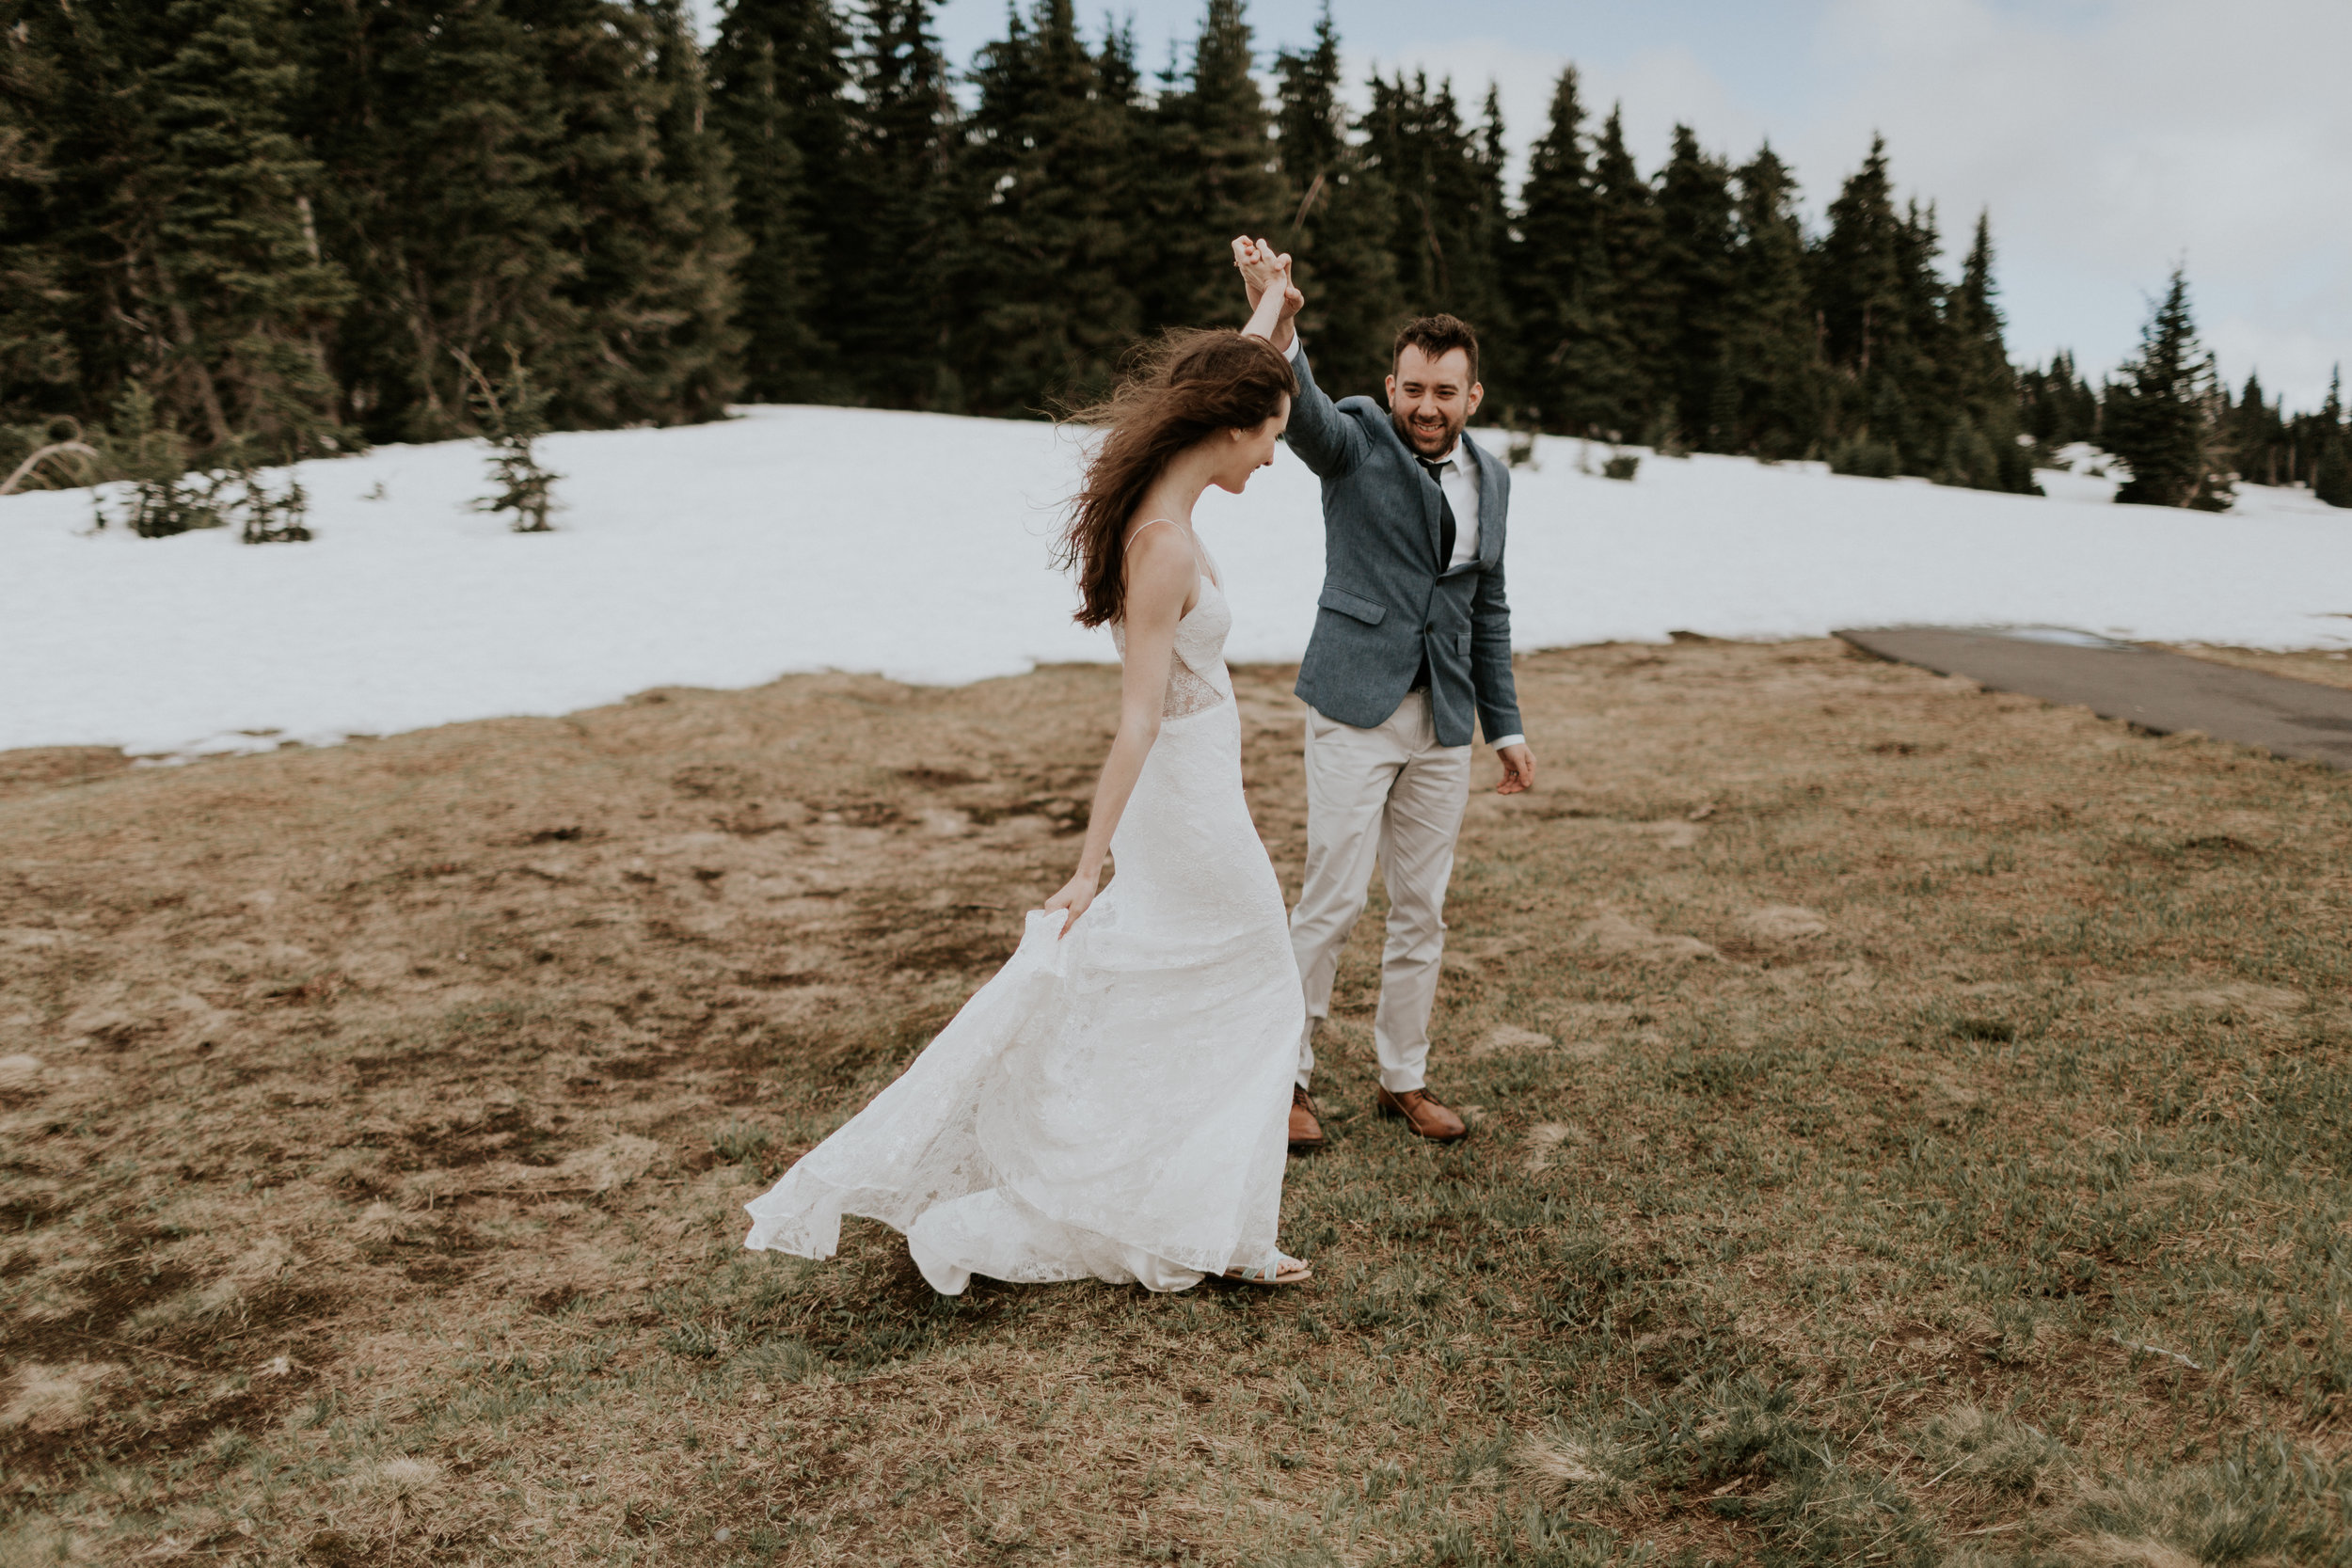 PNW-elopement-wedding-engagement-olympic national park-port angeles-hurricane ridge-lake crescent-kayla dawn photography- photographer-photography-kayladawnphoto-192.jpg